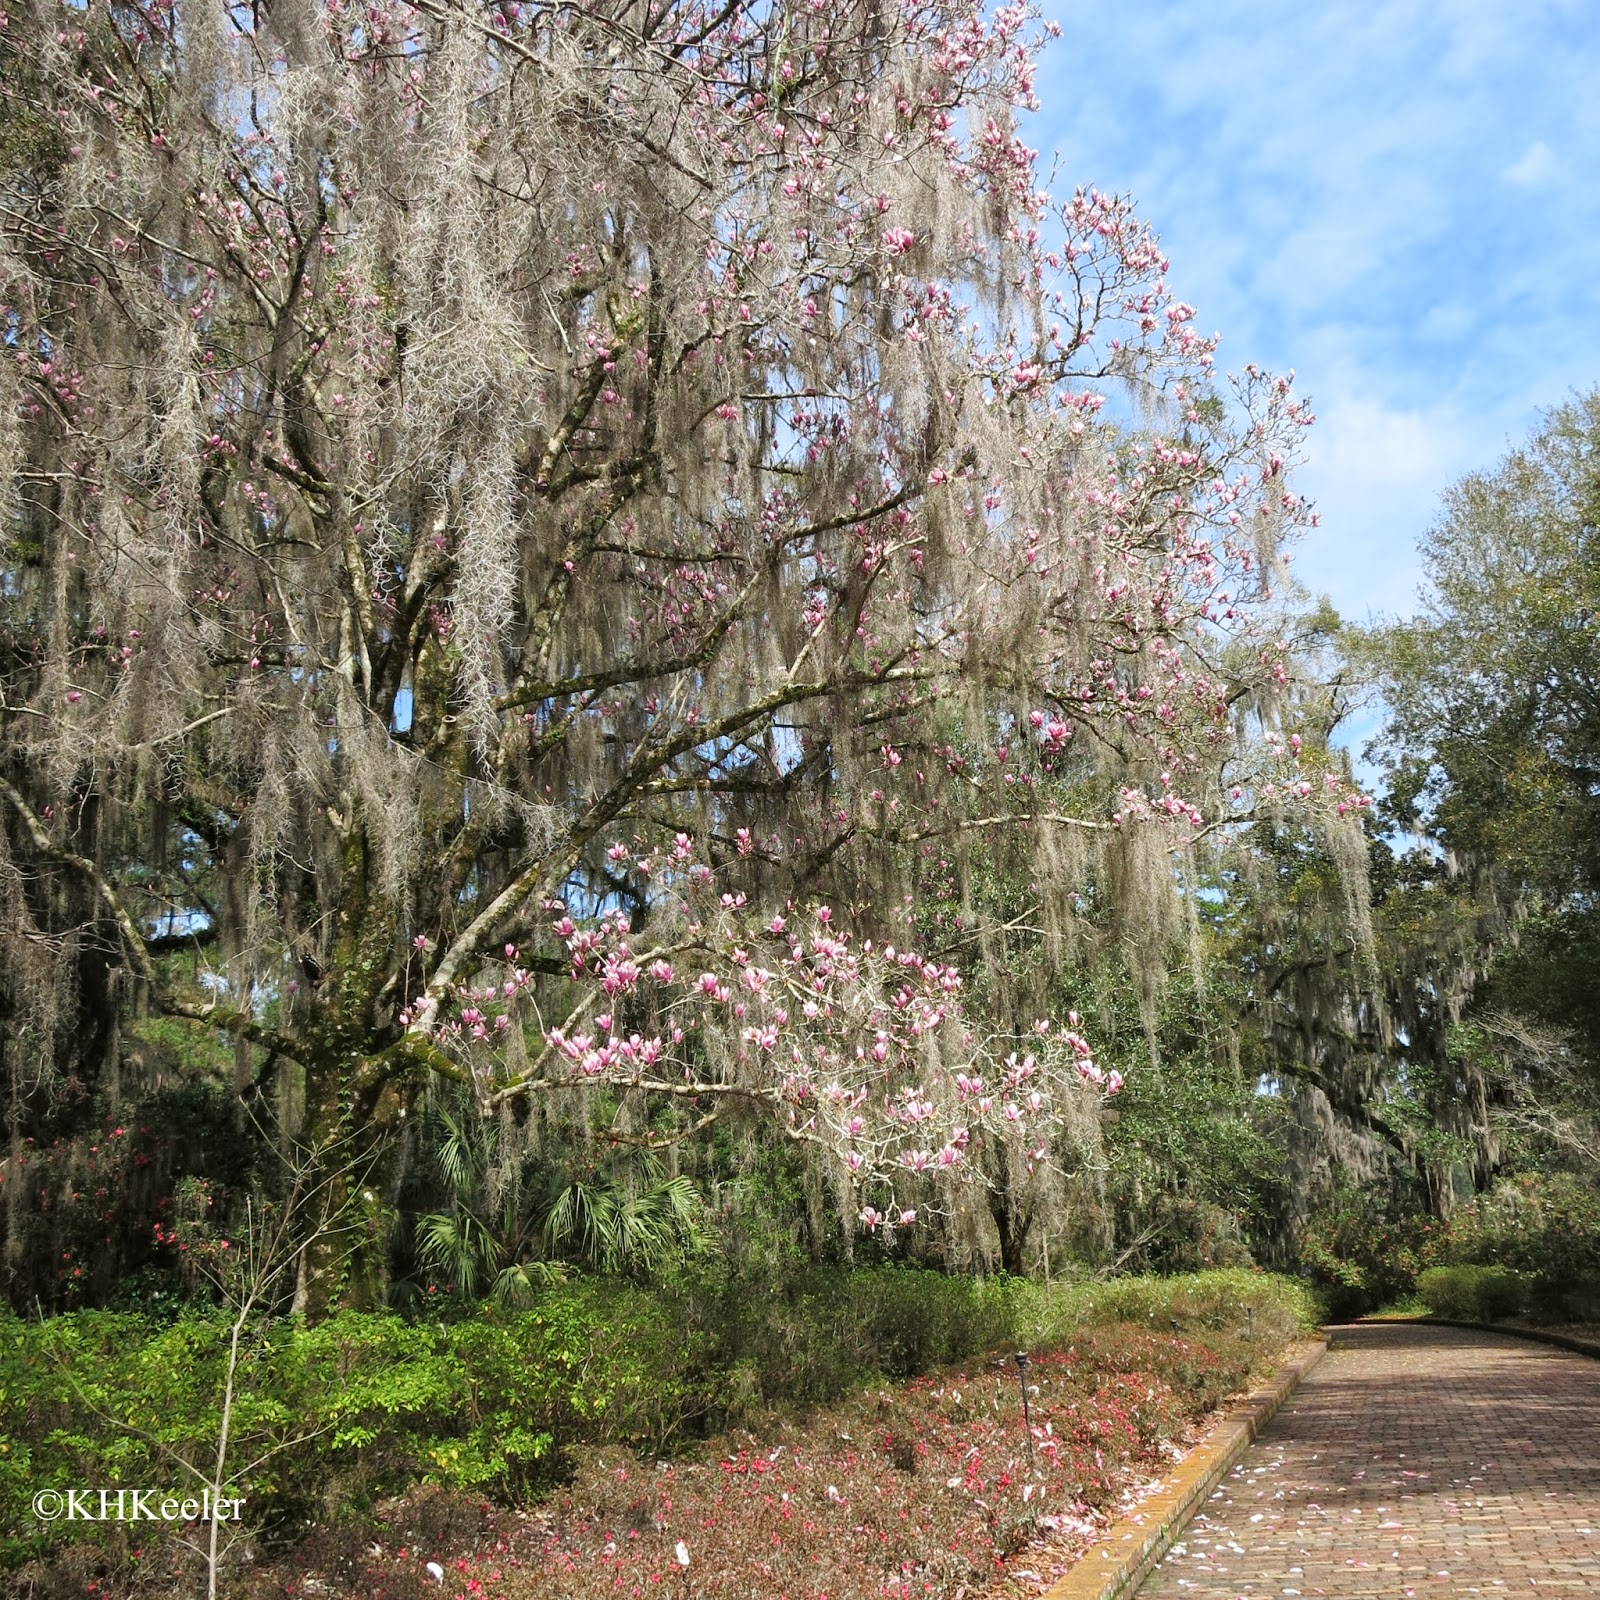 magnolia covered in Spanish moss